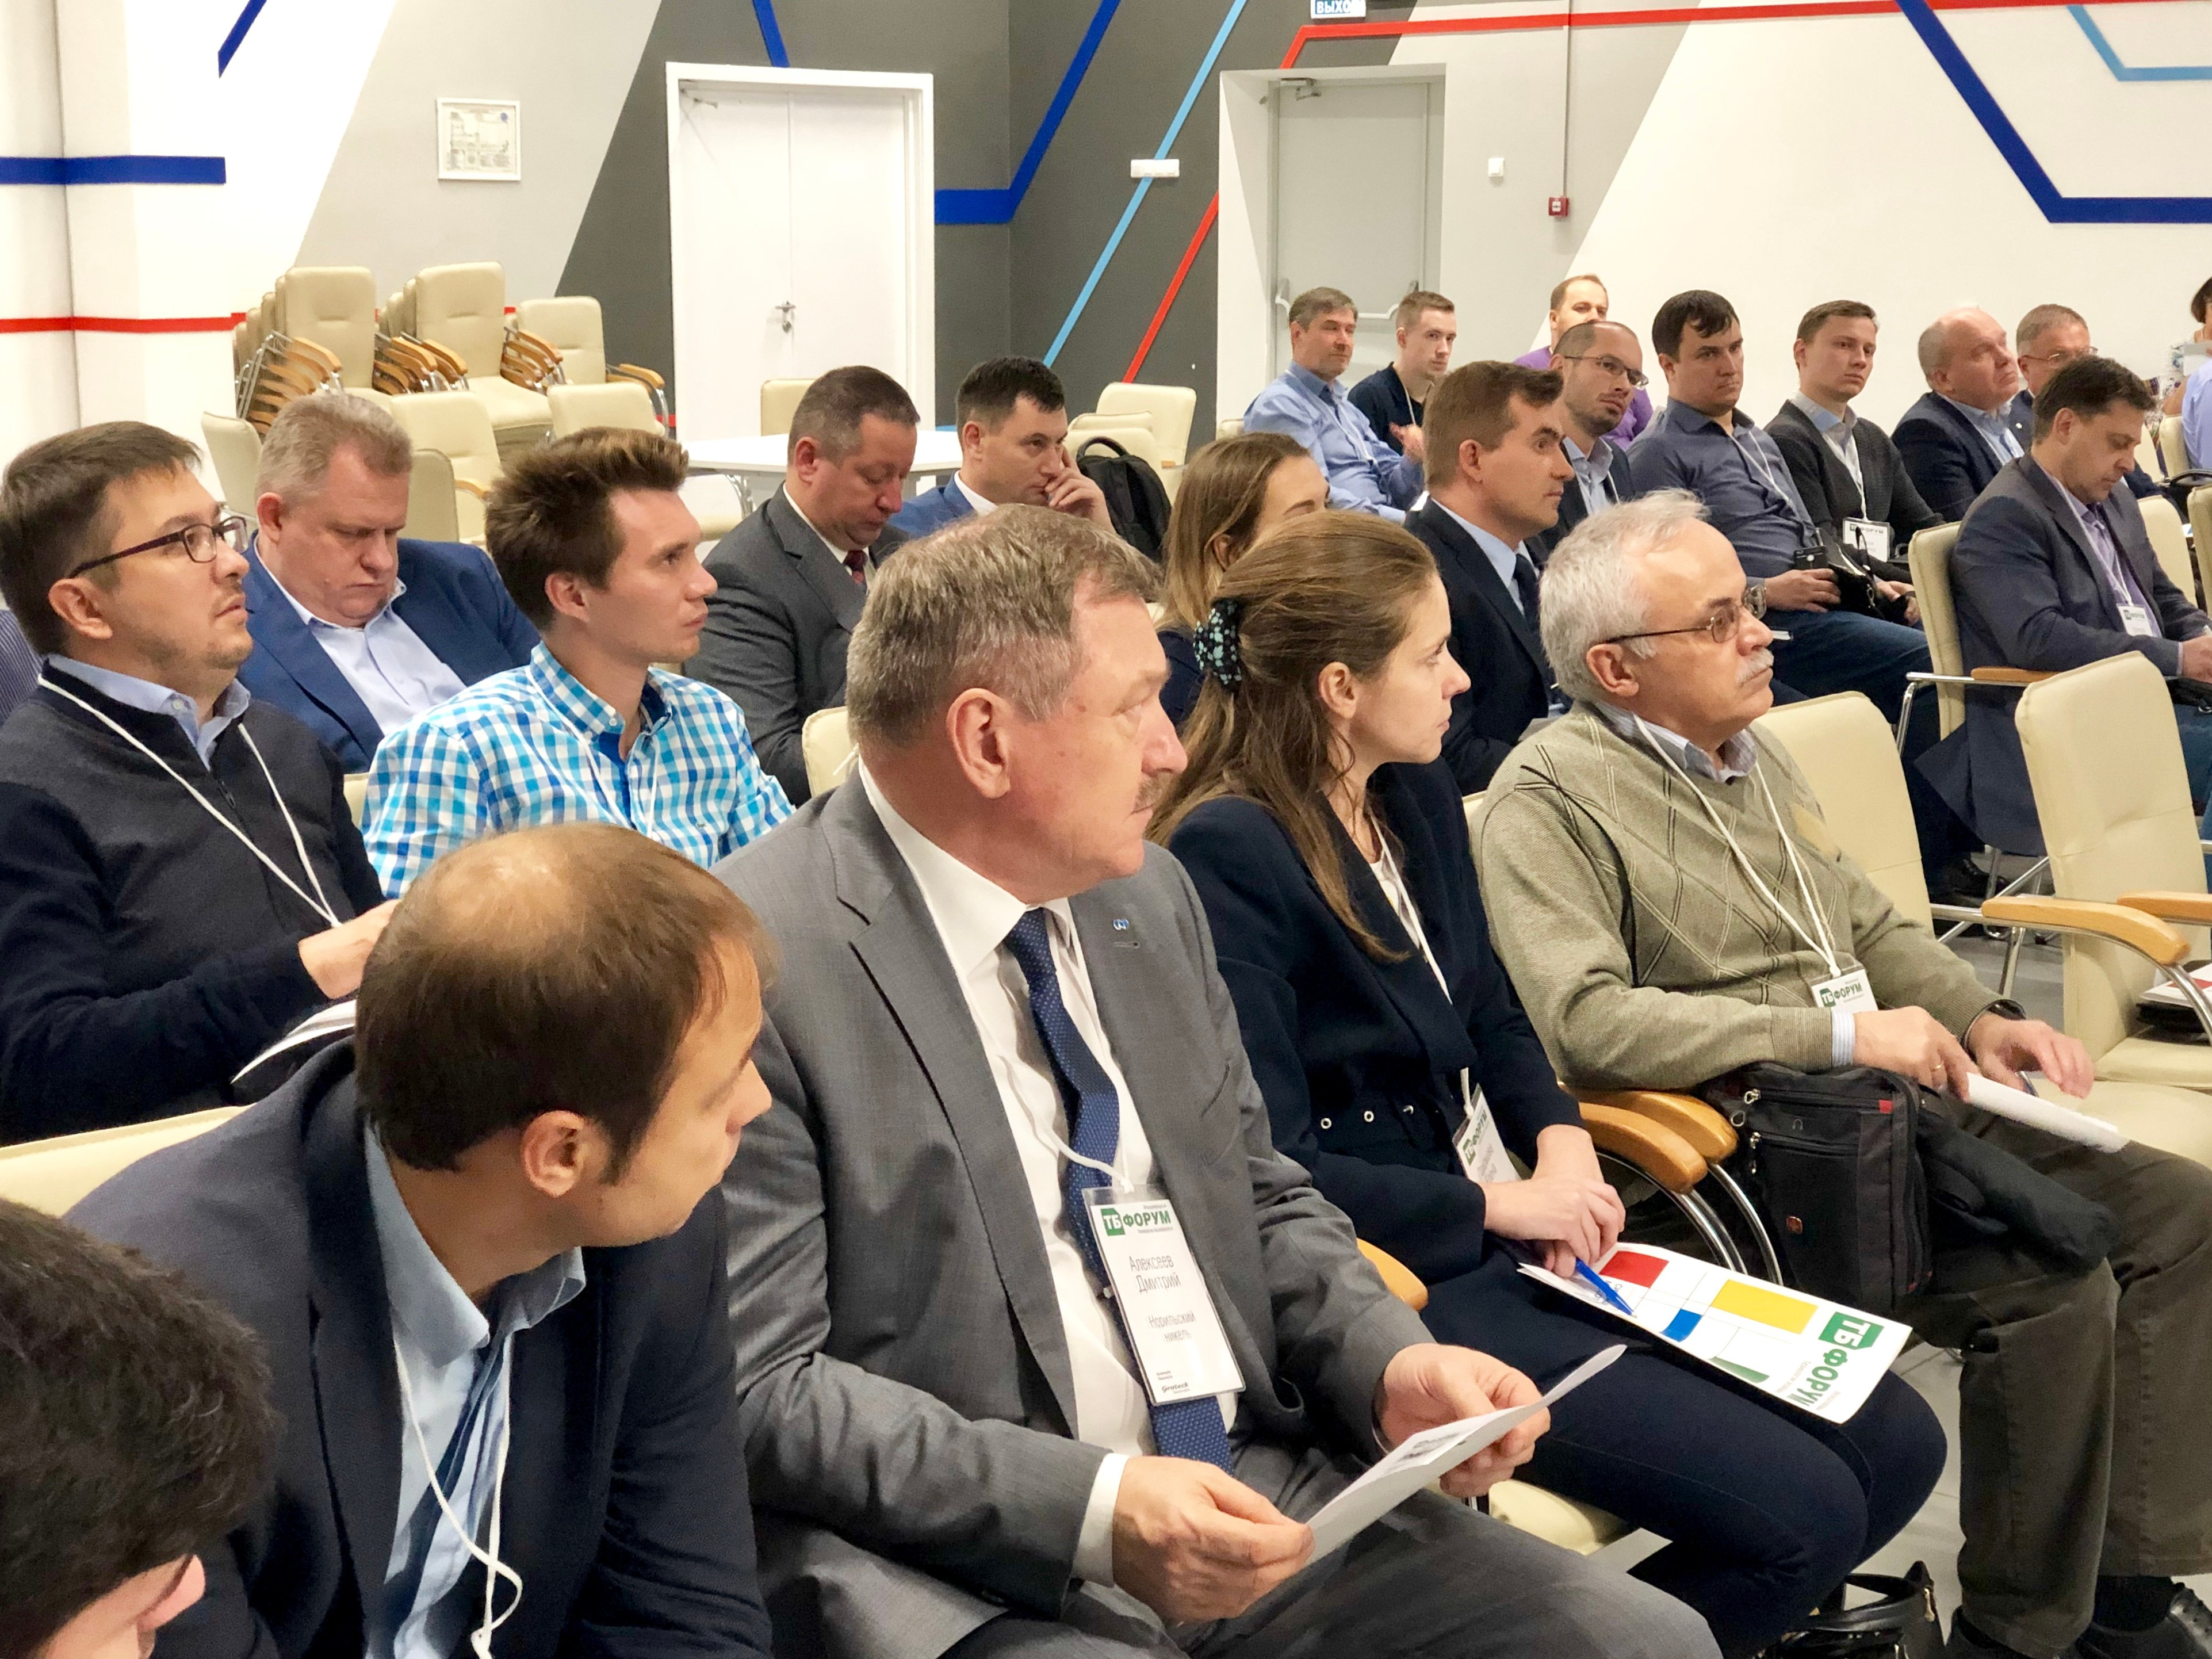 Heads of RZD, FPC, Nornickel, Gazprom Energy Holding and Rosatom situation centers held session with suppliers within the preparation for TB Forum 2020